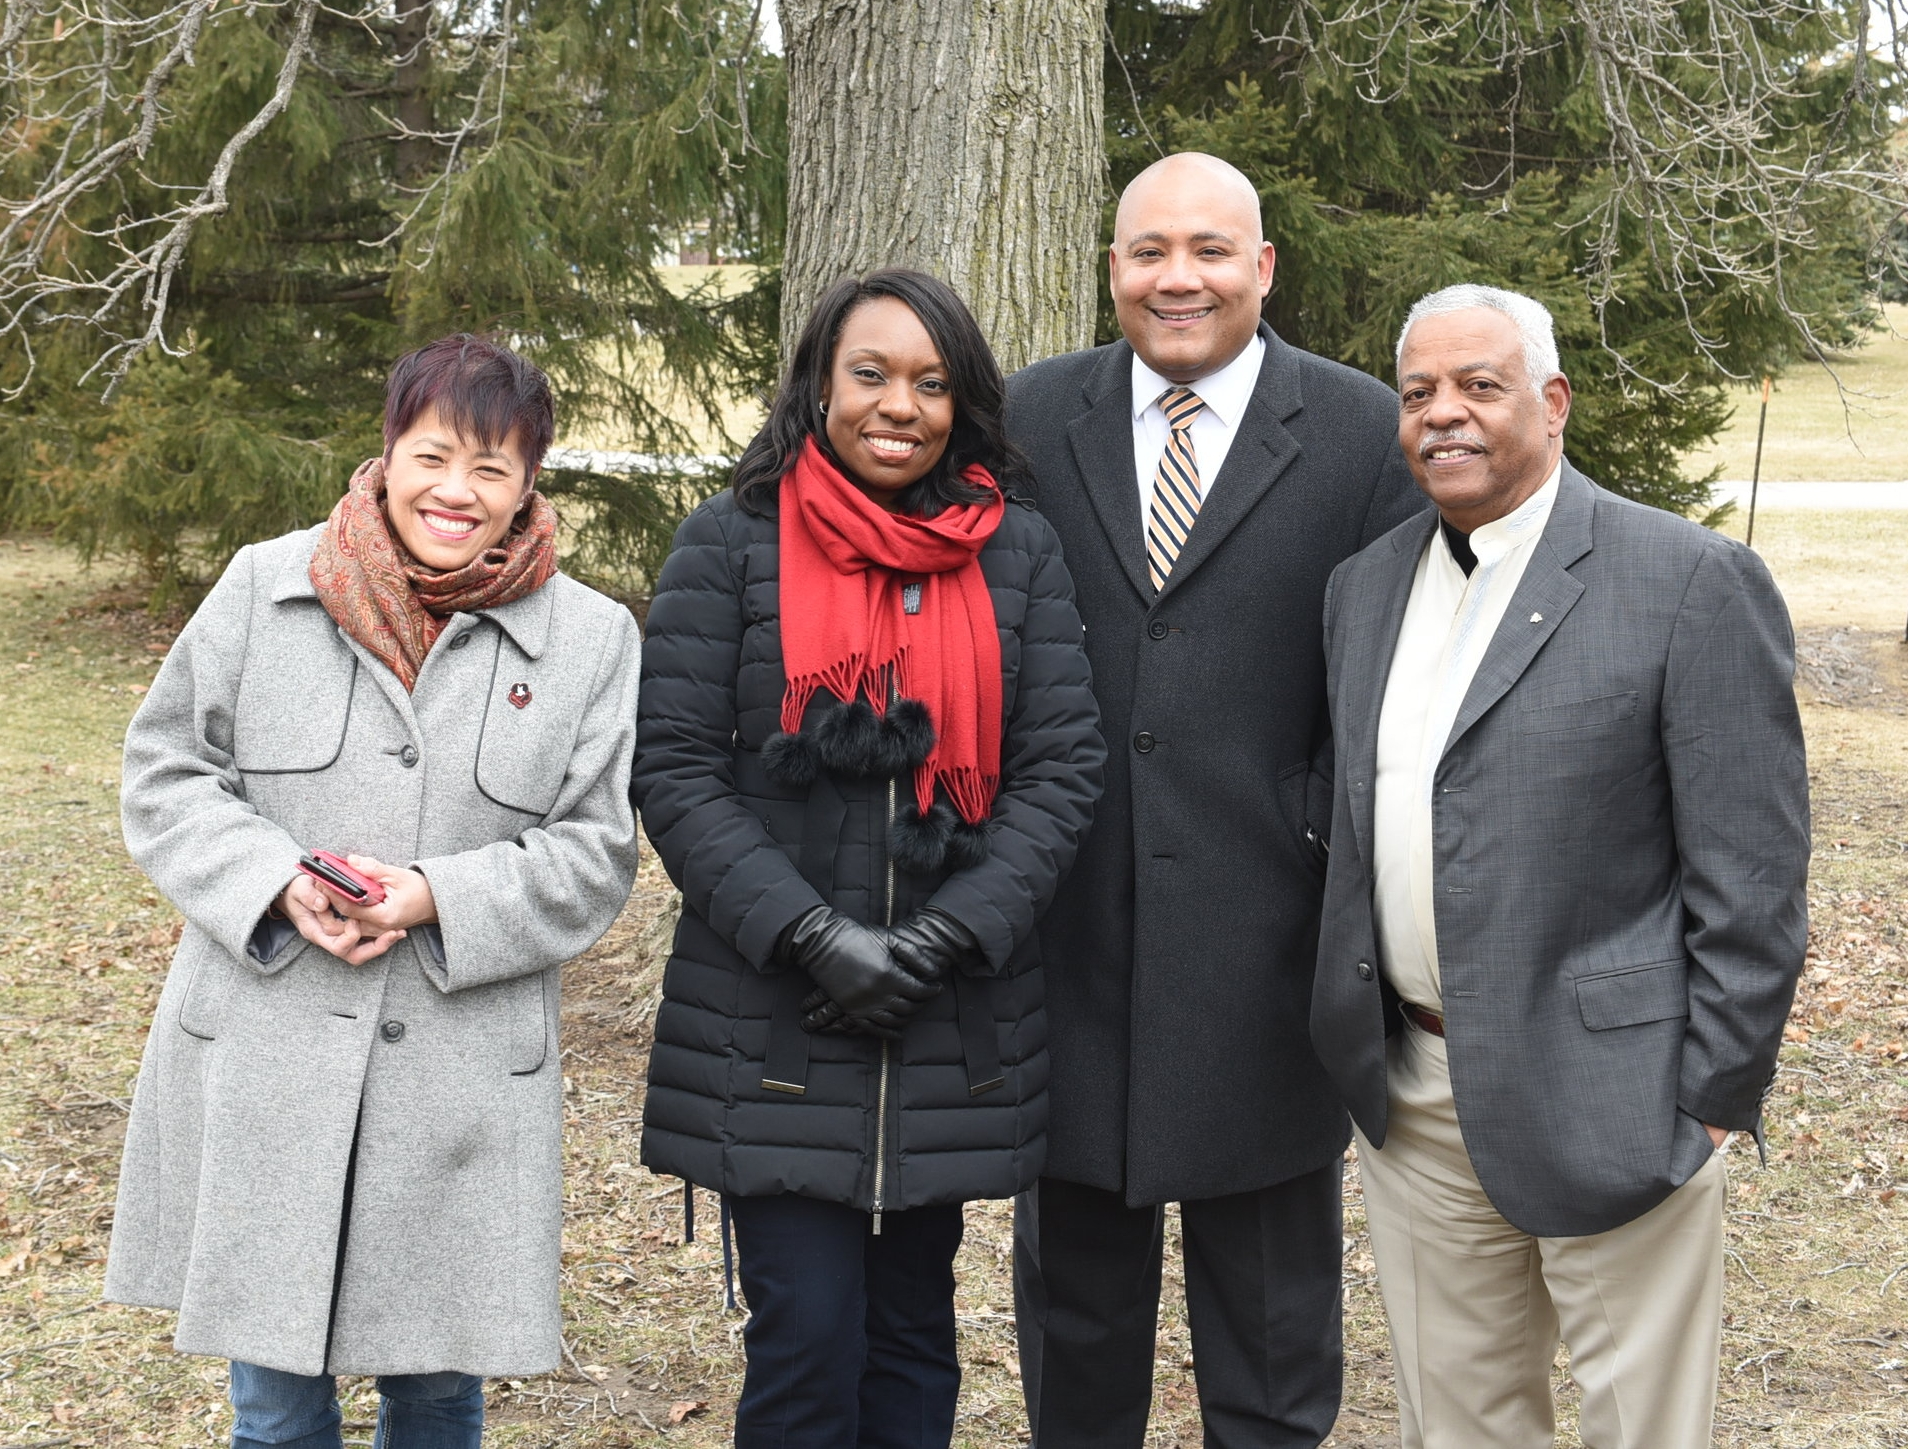 Liberal MPP's Soo Wong, Mitzie Hunter and Michael Coteau with Alvin Curling (r)